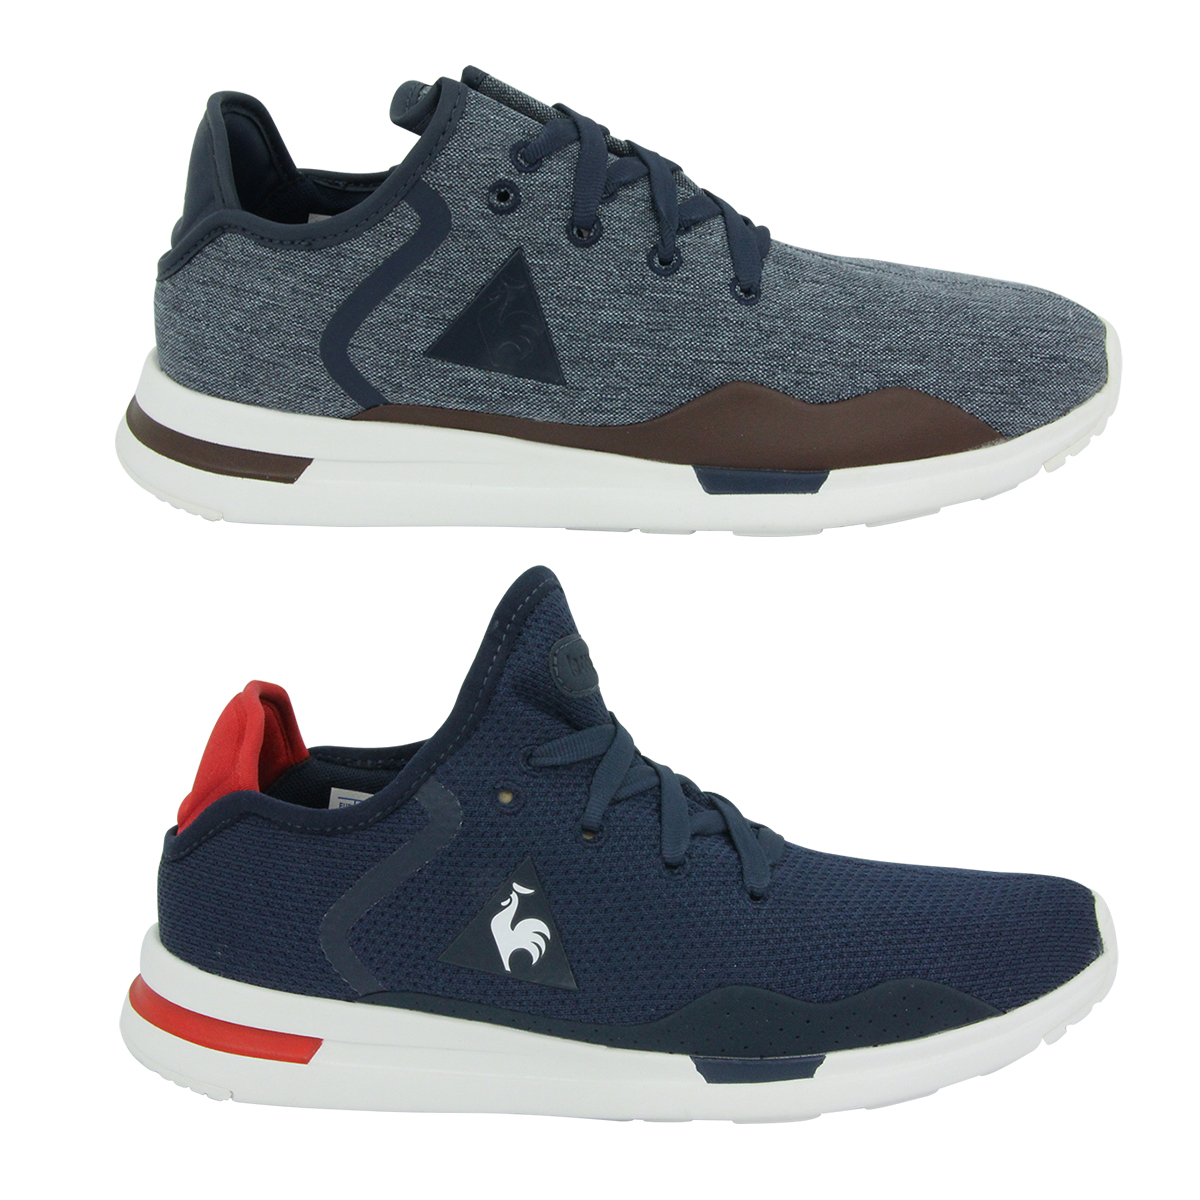 fa7a40f644b Le Coq Sportif SOLAS SPORT Chaussures Mode Sneakers Homme